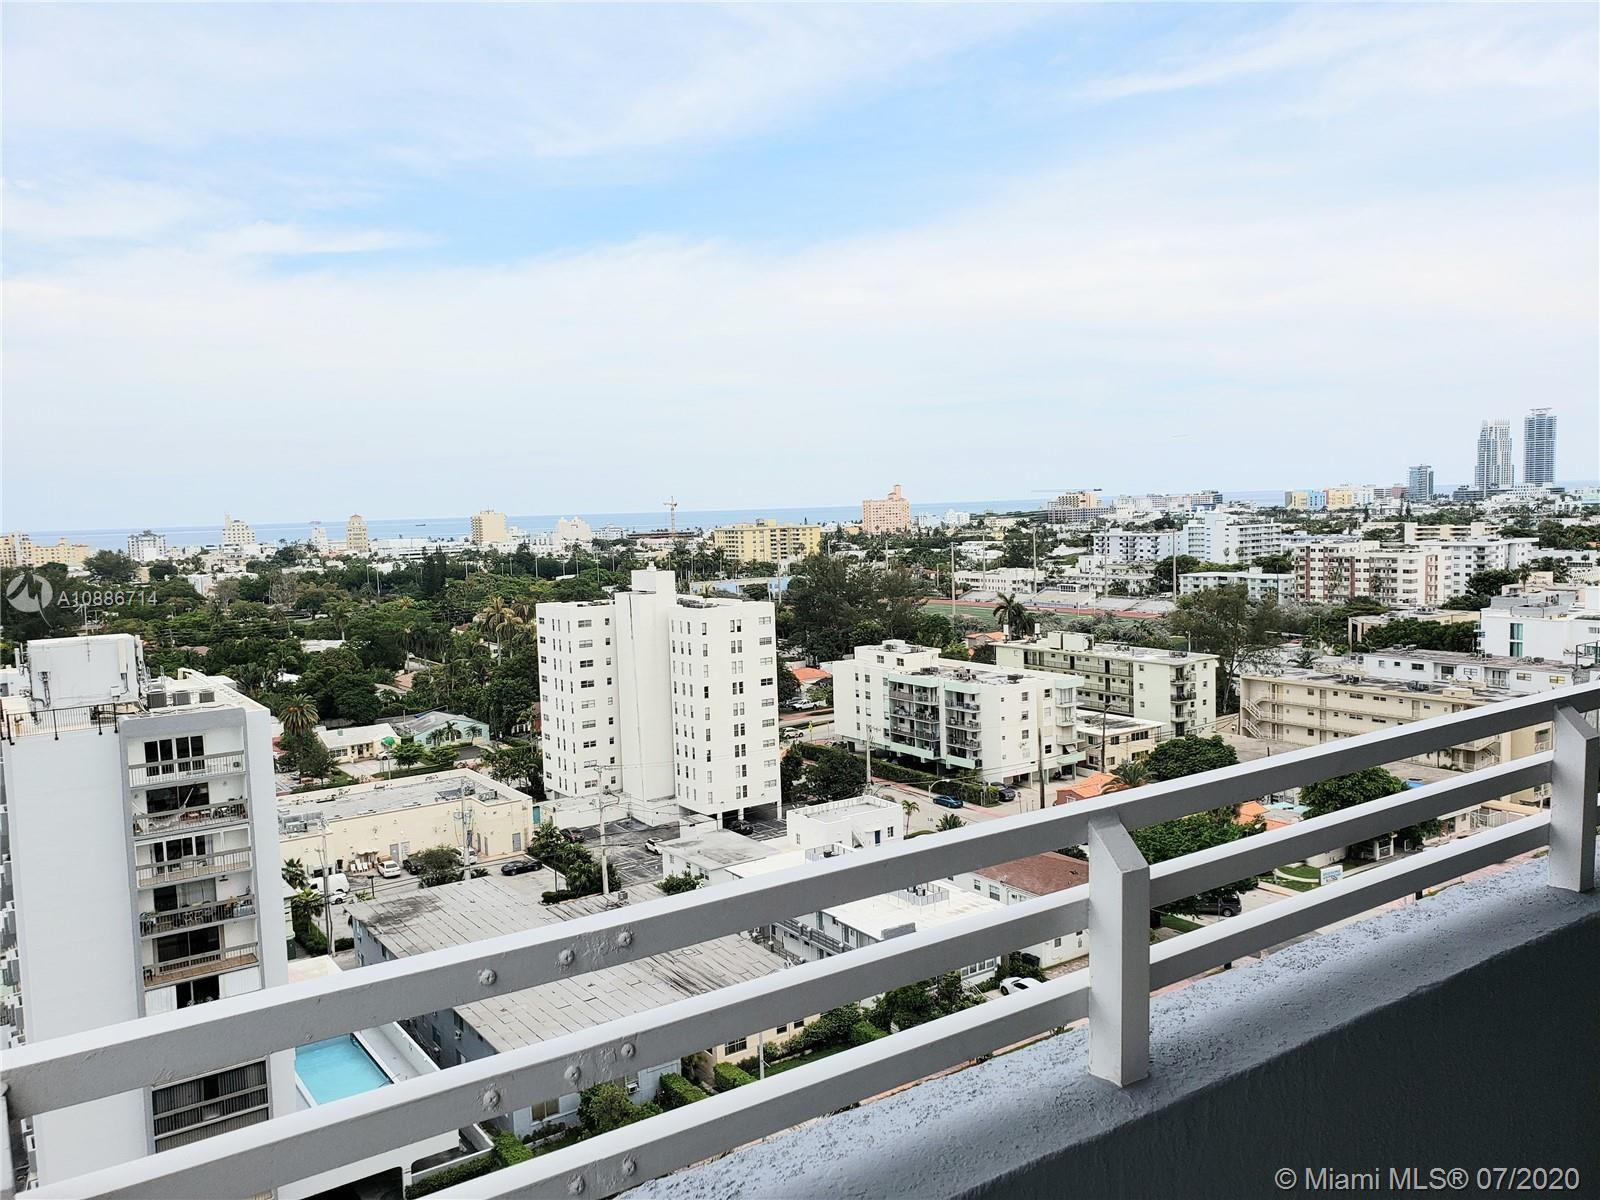 Waverly South Beach #1513 - 1330 WEST AV #1513, Miami Beach, FL 33139